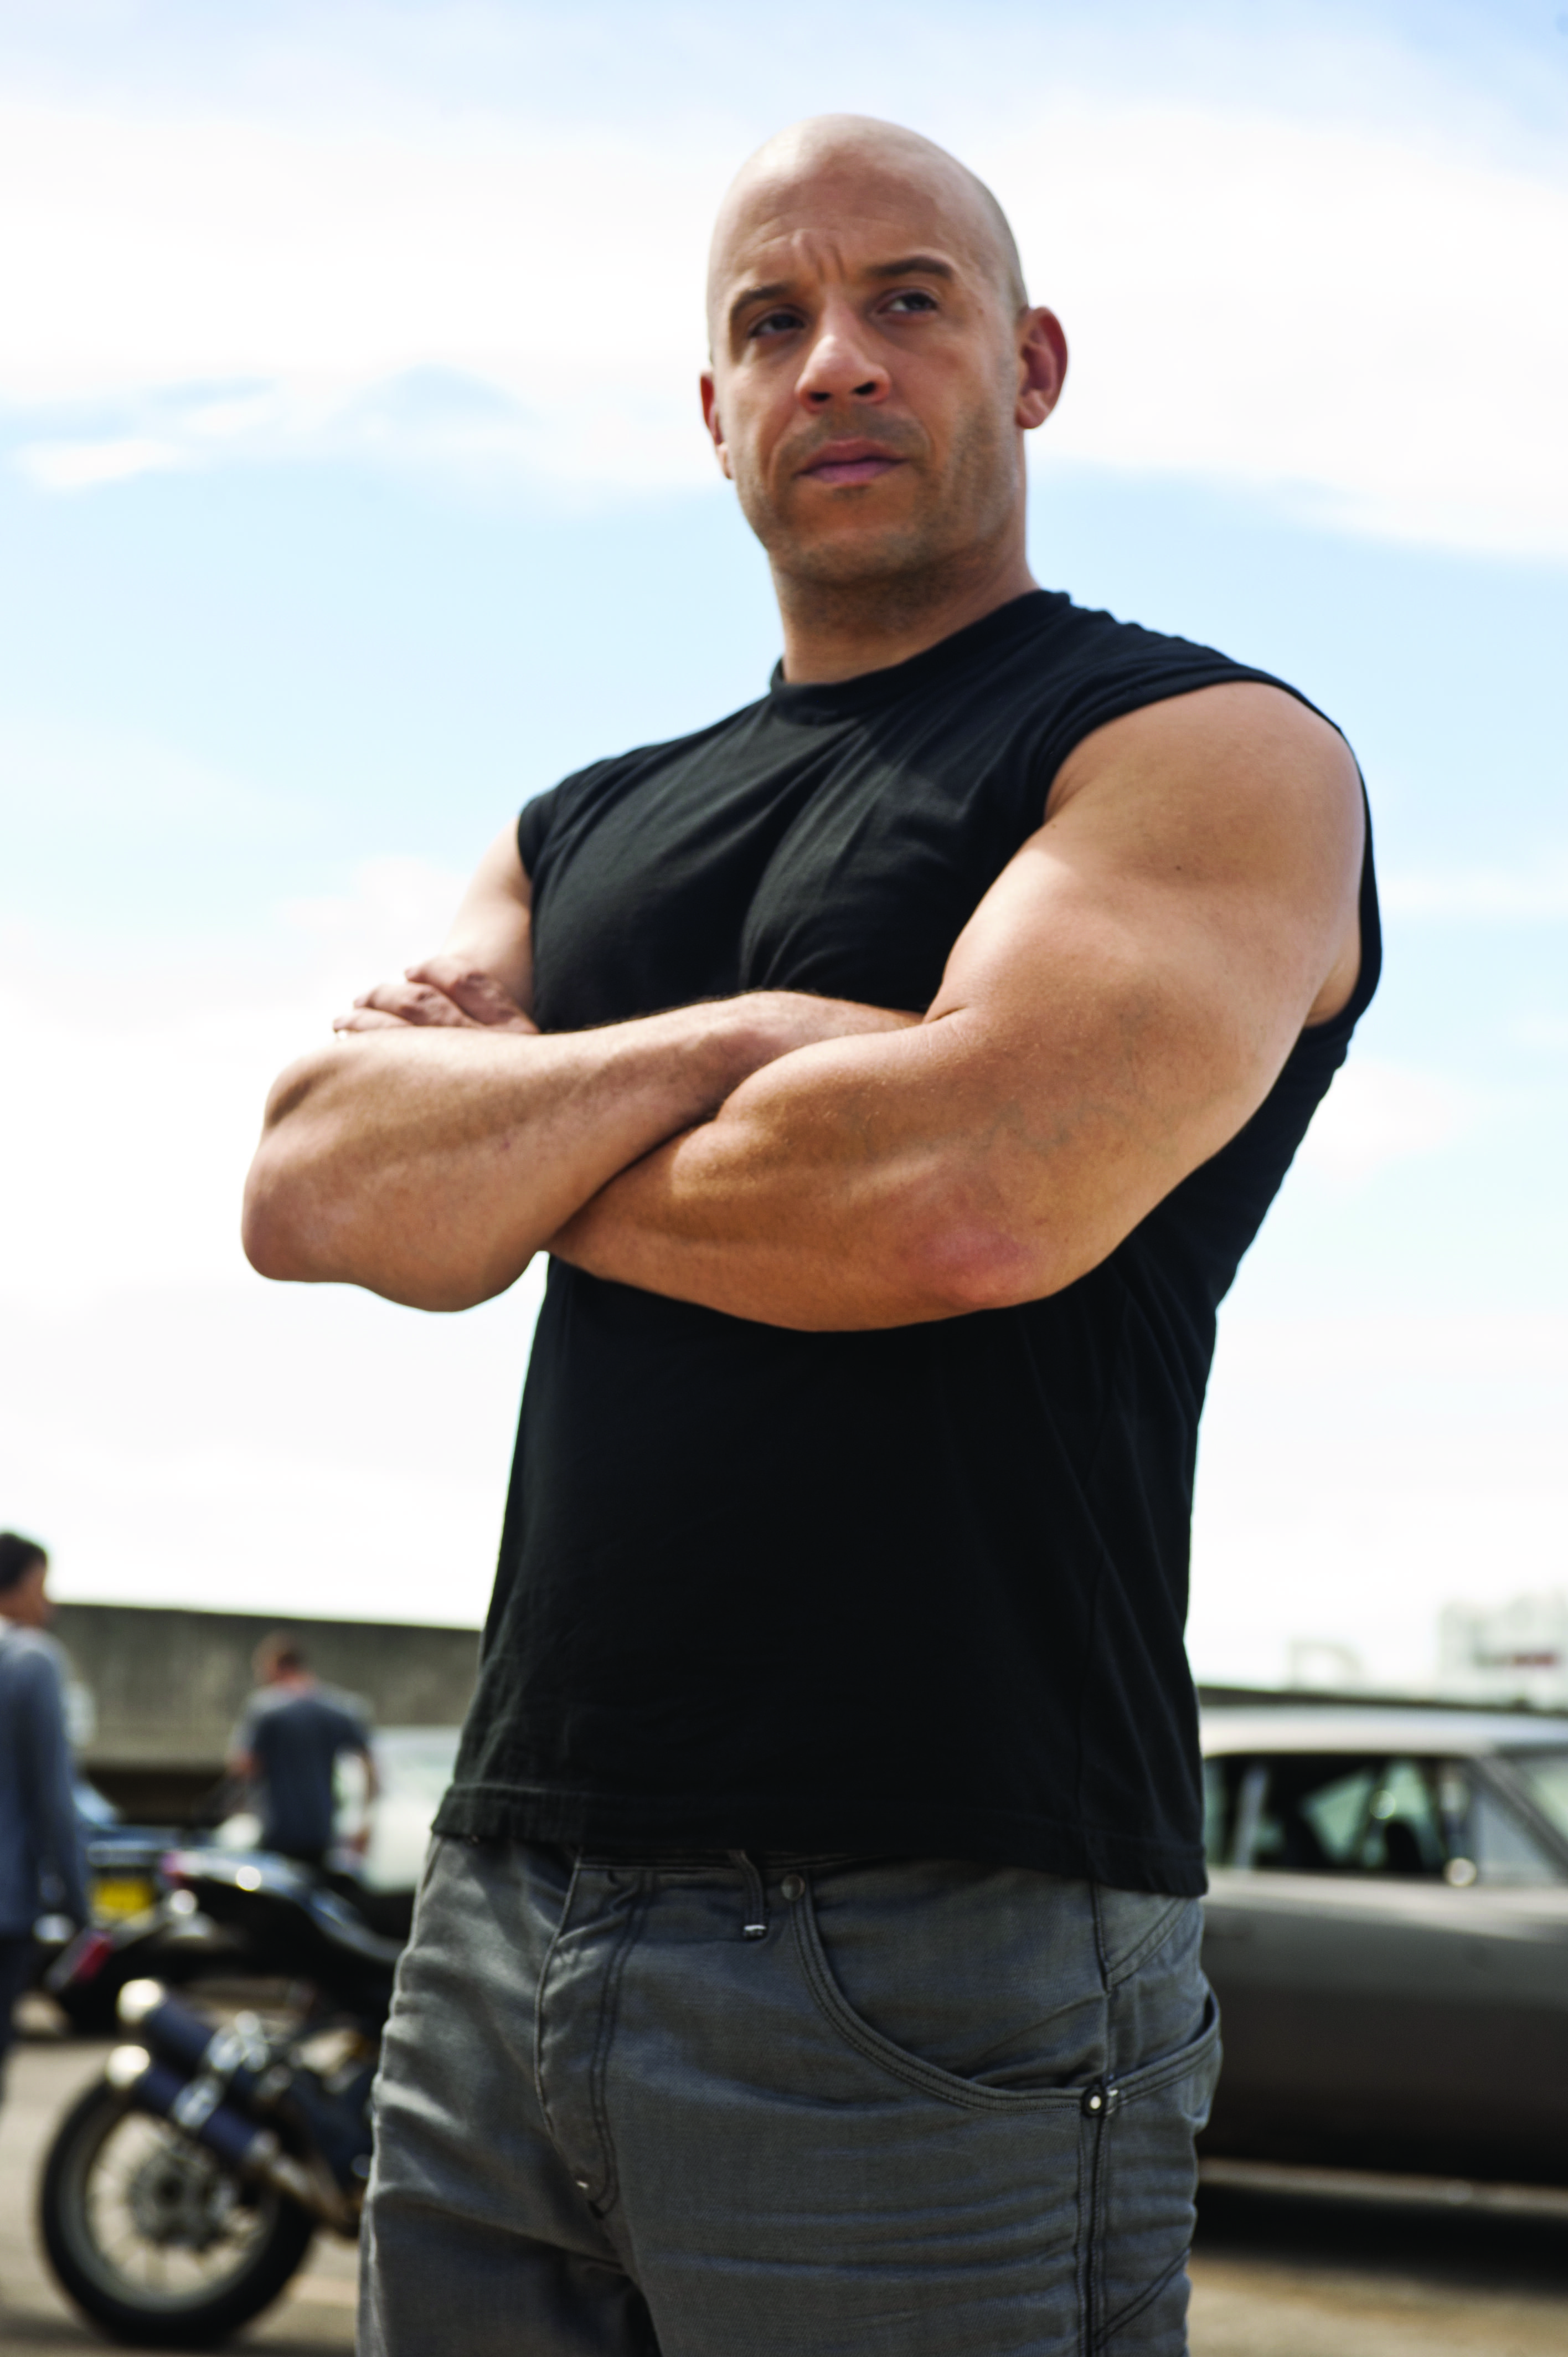 fast 5   FAST FIVE Movie Images FAST AND THE FURIOUS 5 Images   Collider bc895d0b8d